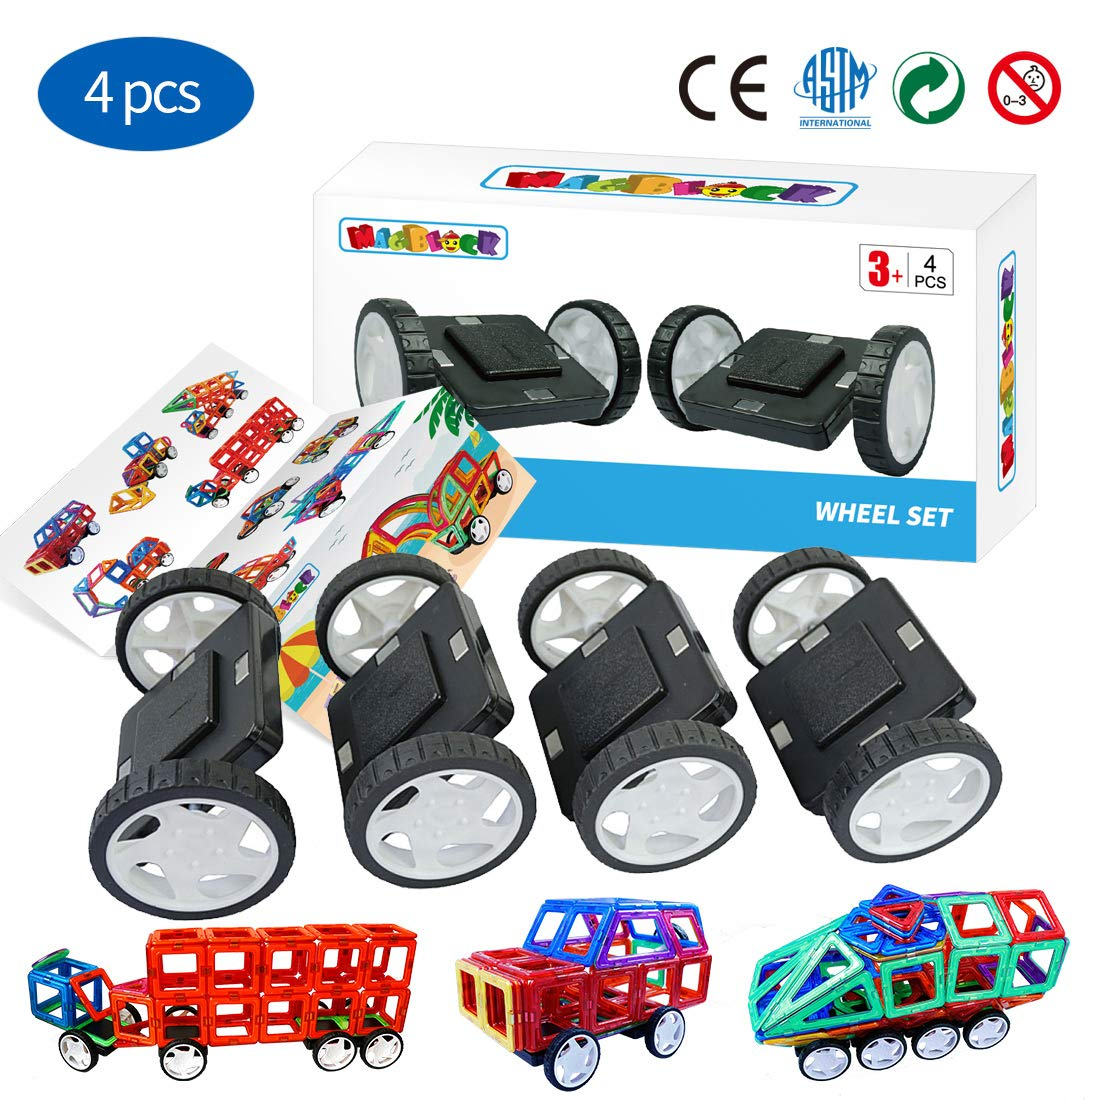 Magnetic Blocks 4 Pieces Wheels Set,Compatible with Other Brands of Standard Size Magnetic Tiles, Magnetic Toys Wheels Bases for Kids/Toddler